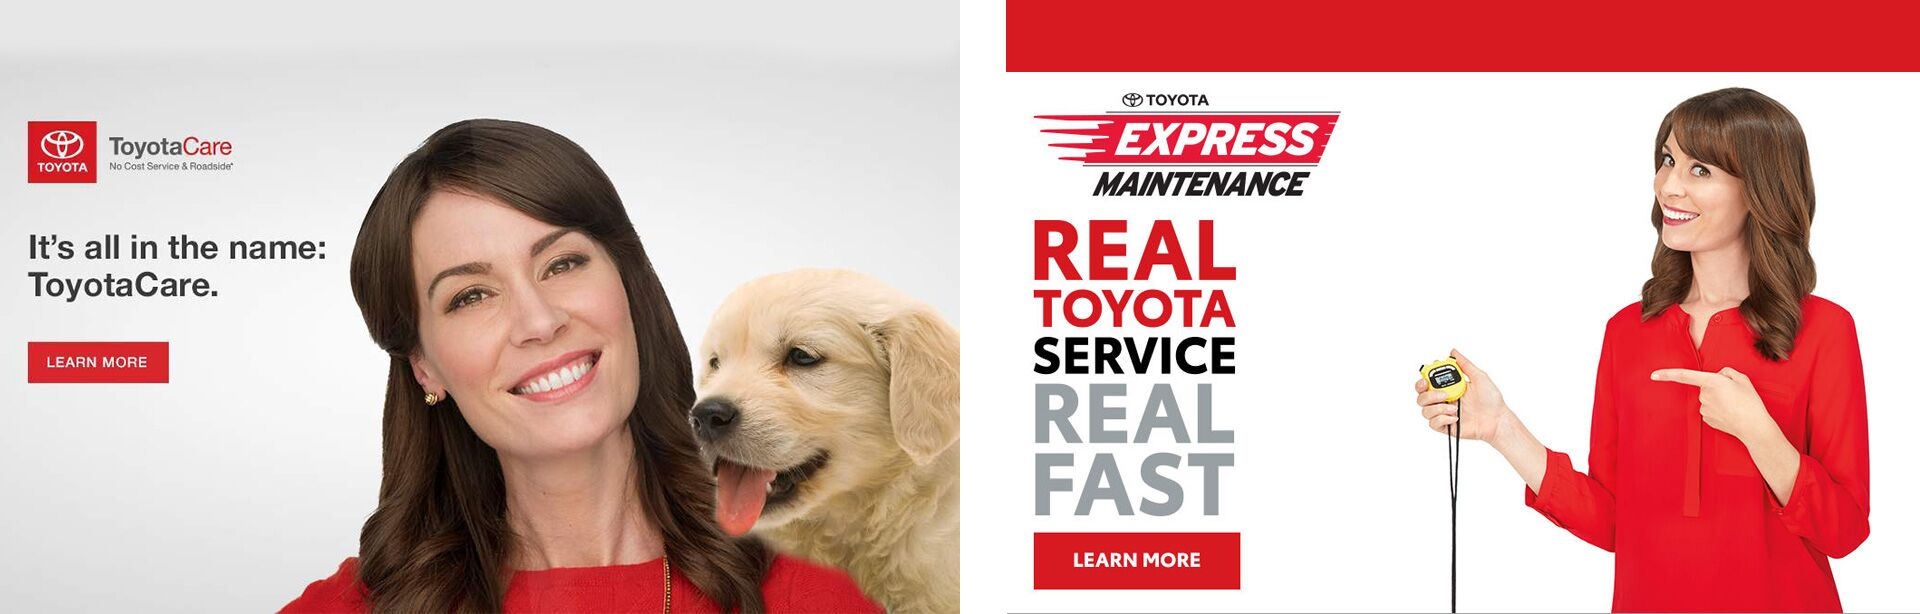 Toyota Care / Express